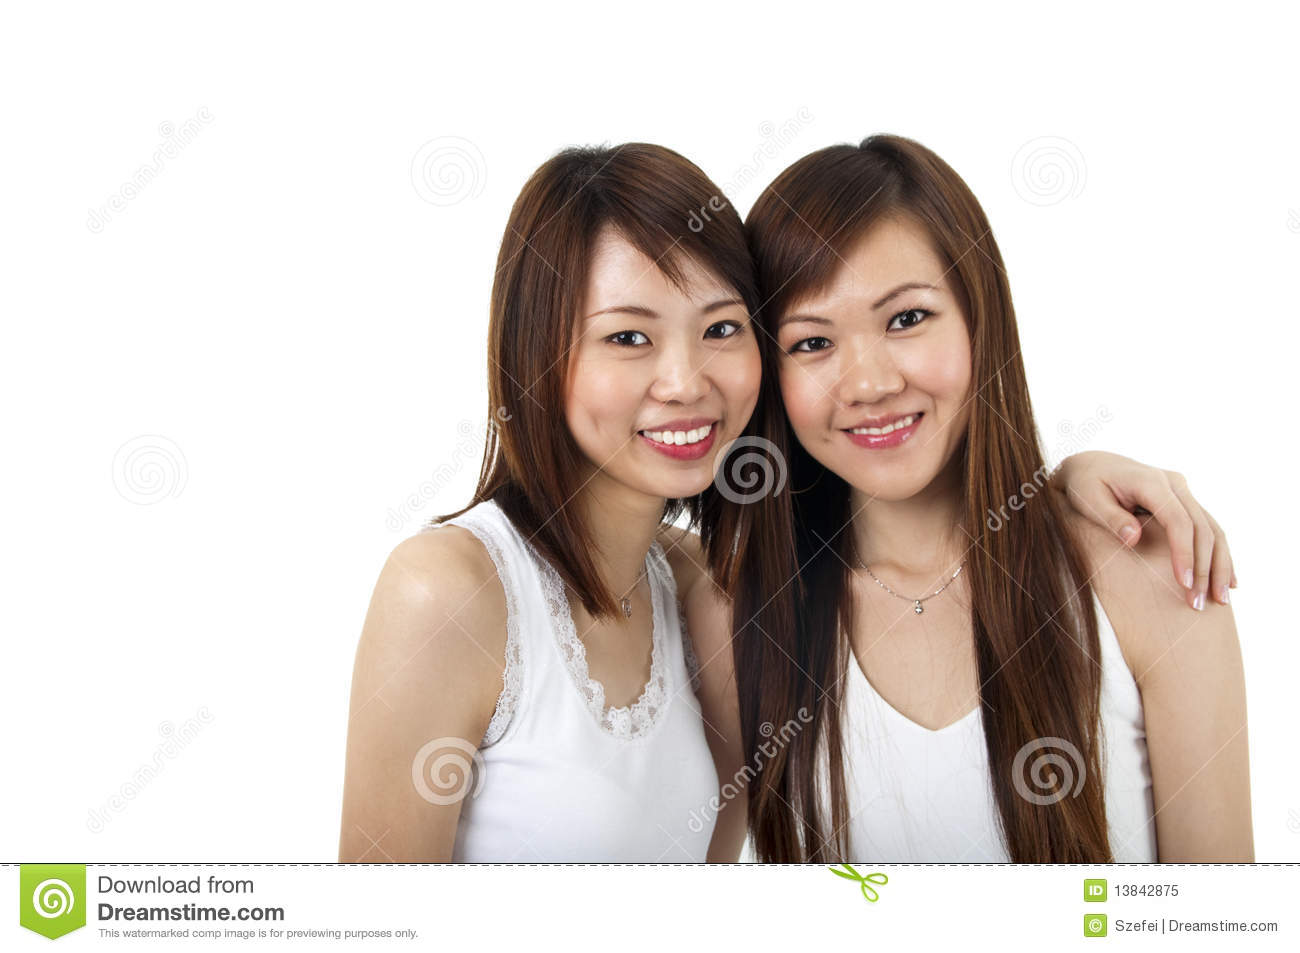 friendship single asian girls Quality filipina online dating site - meet sincere, marriage-minded ladies from asia connect with filipino women, fall in love & date a christian asian woman.